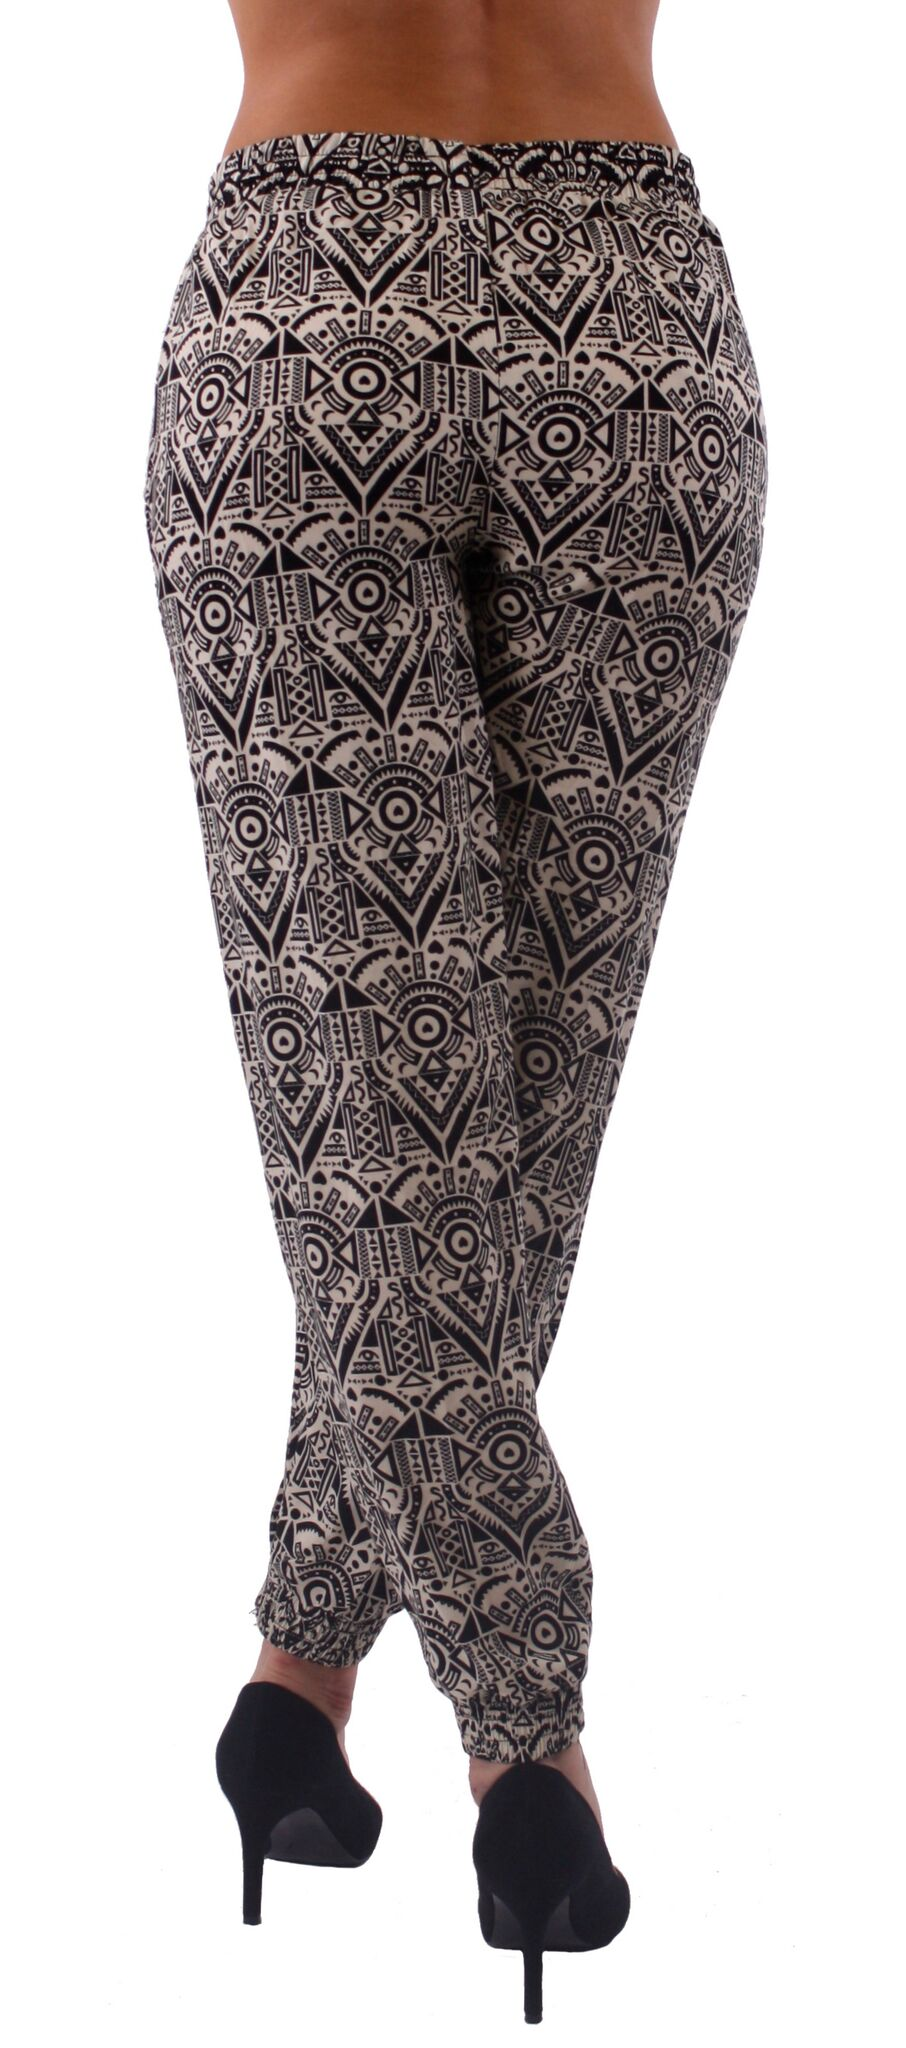 Black & White Print Harem Style Jogger Pants - Home Goods Galore